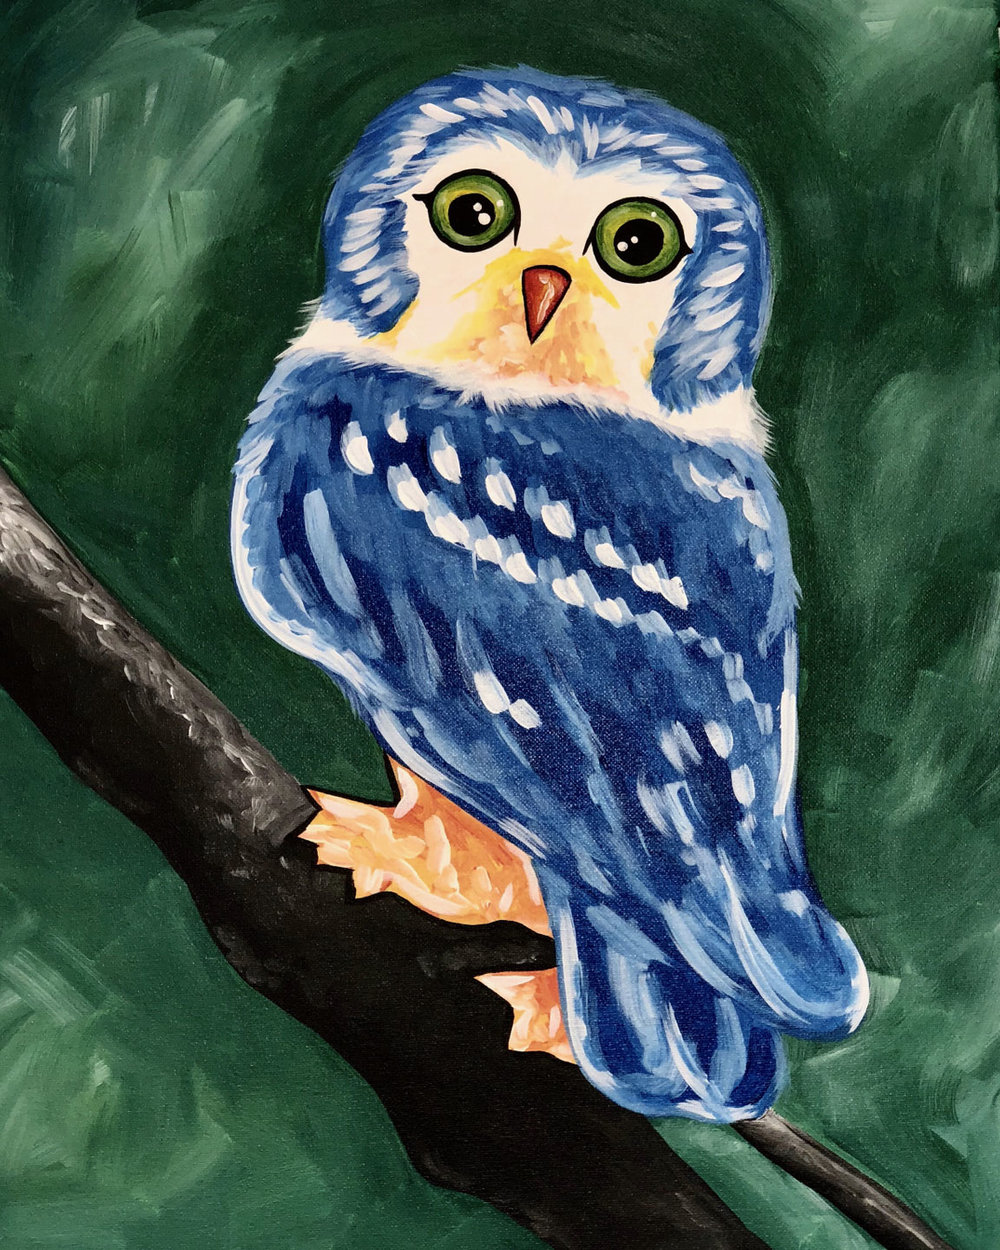 Blue Owl (2 hours)